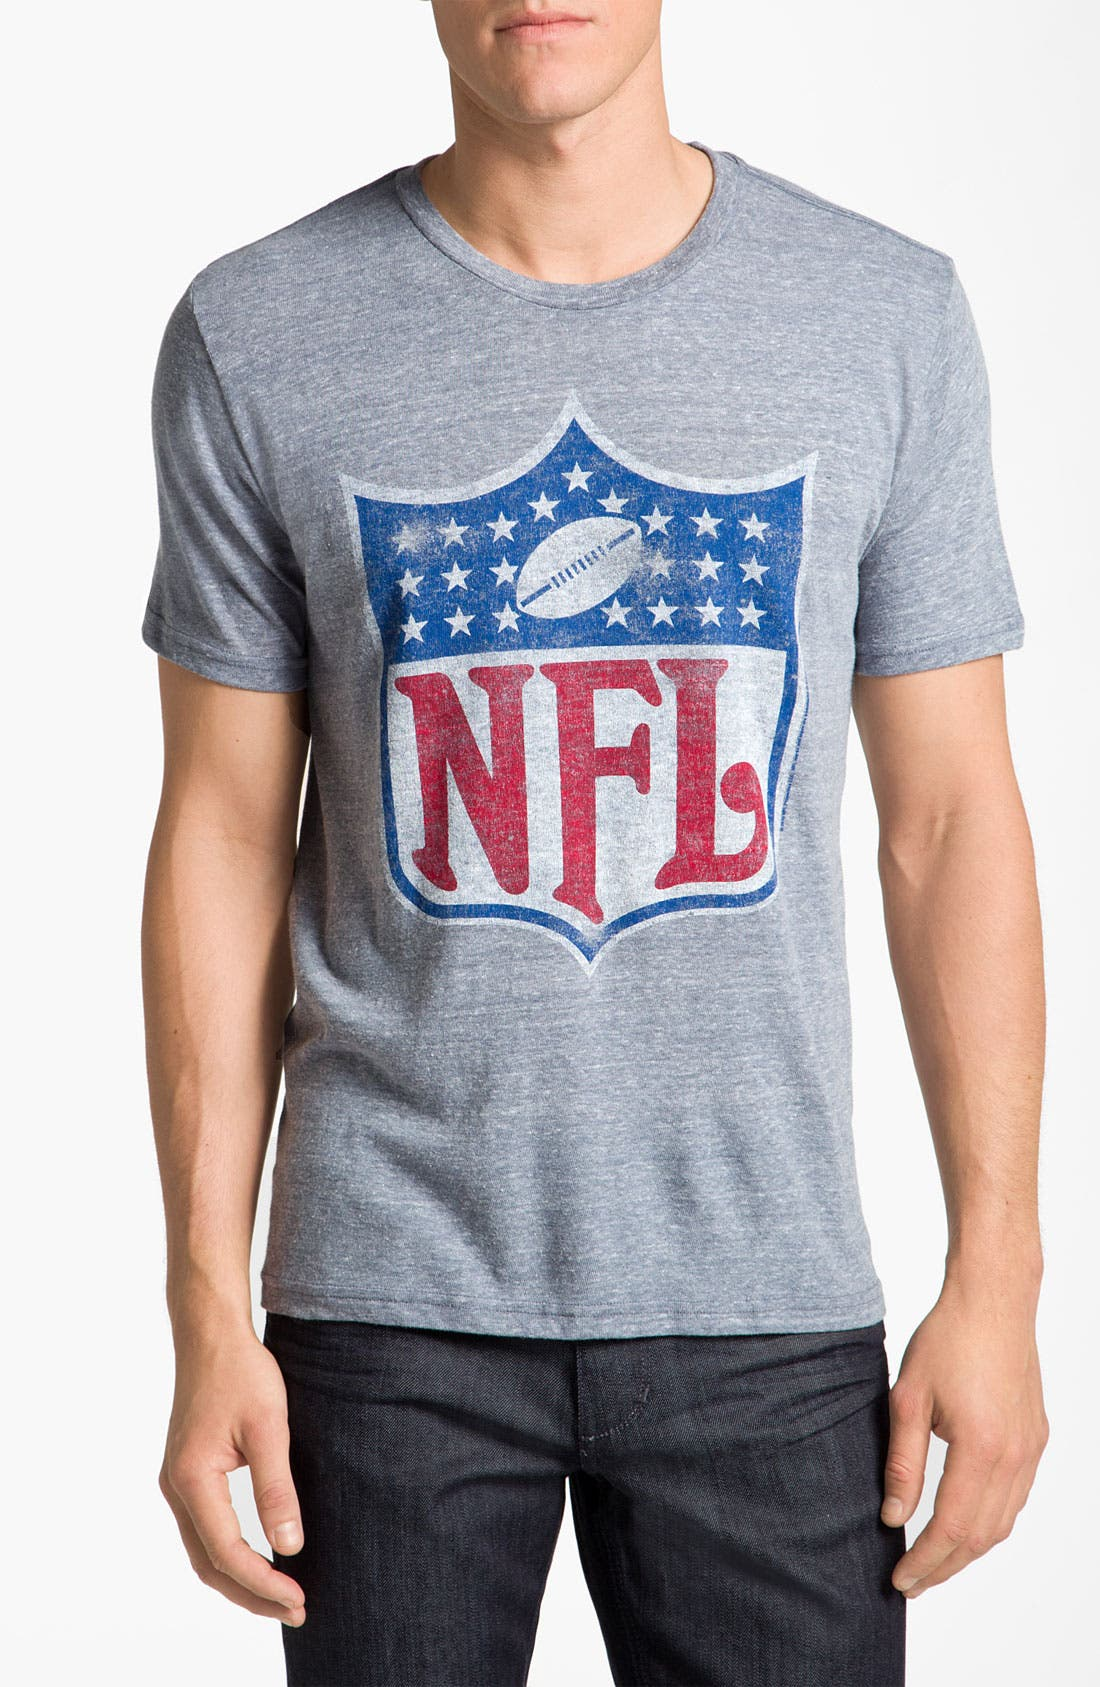 Main Image - Junk Food NFL Shield Graphic Crewneck T-Shirt